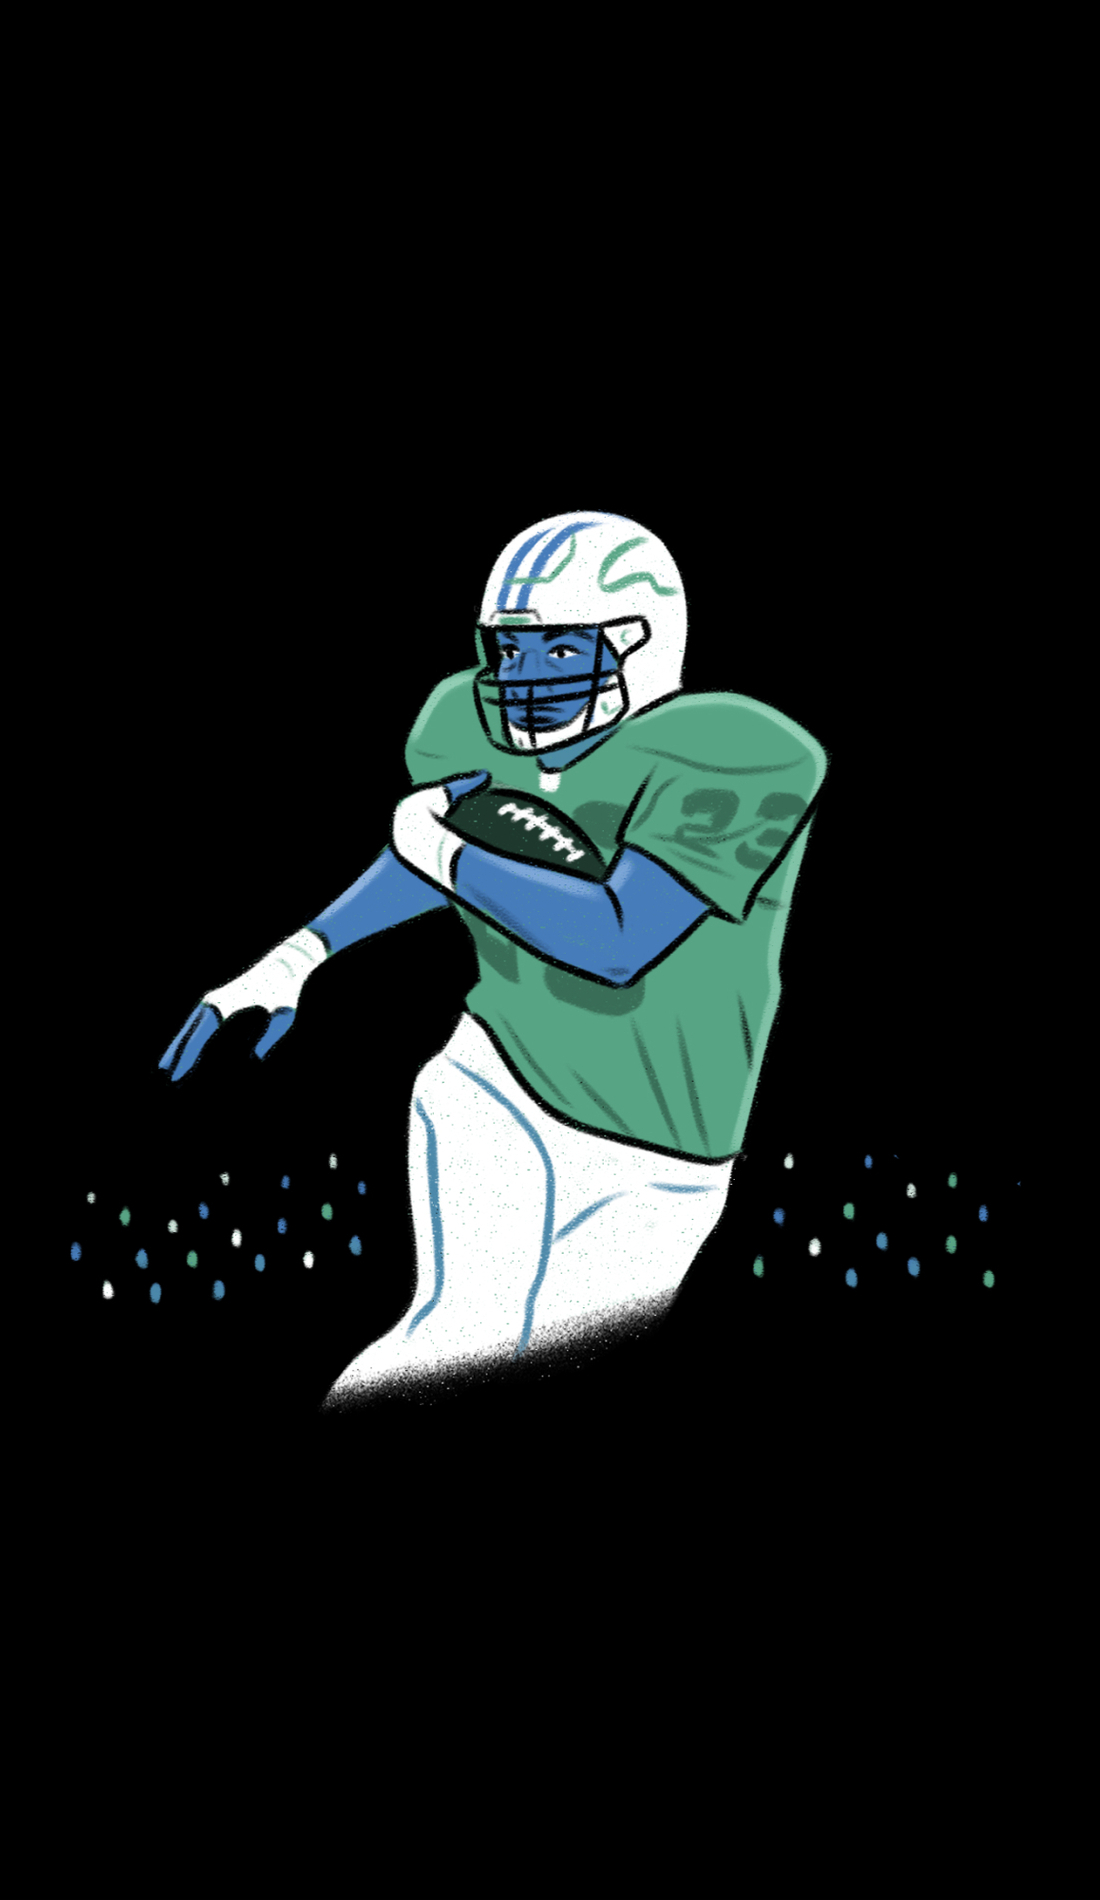 A Grambling State Tigers Football live event